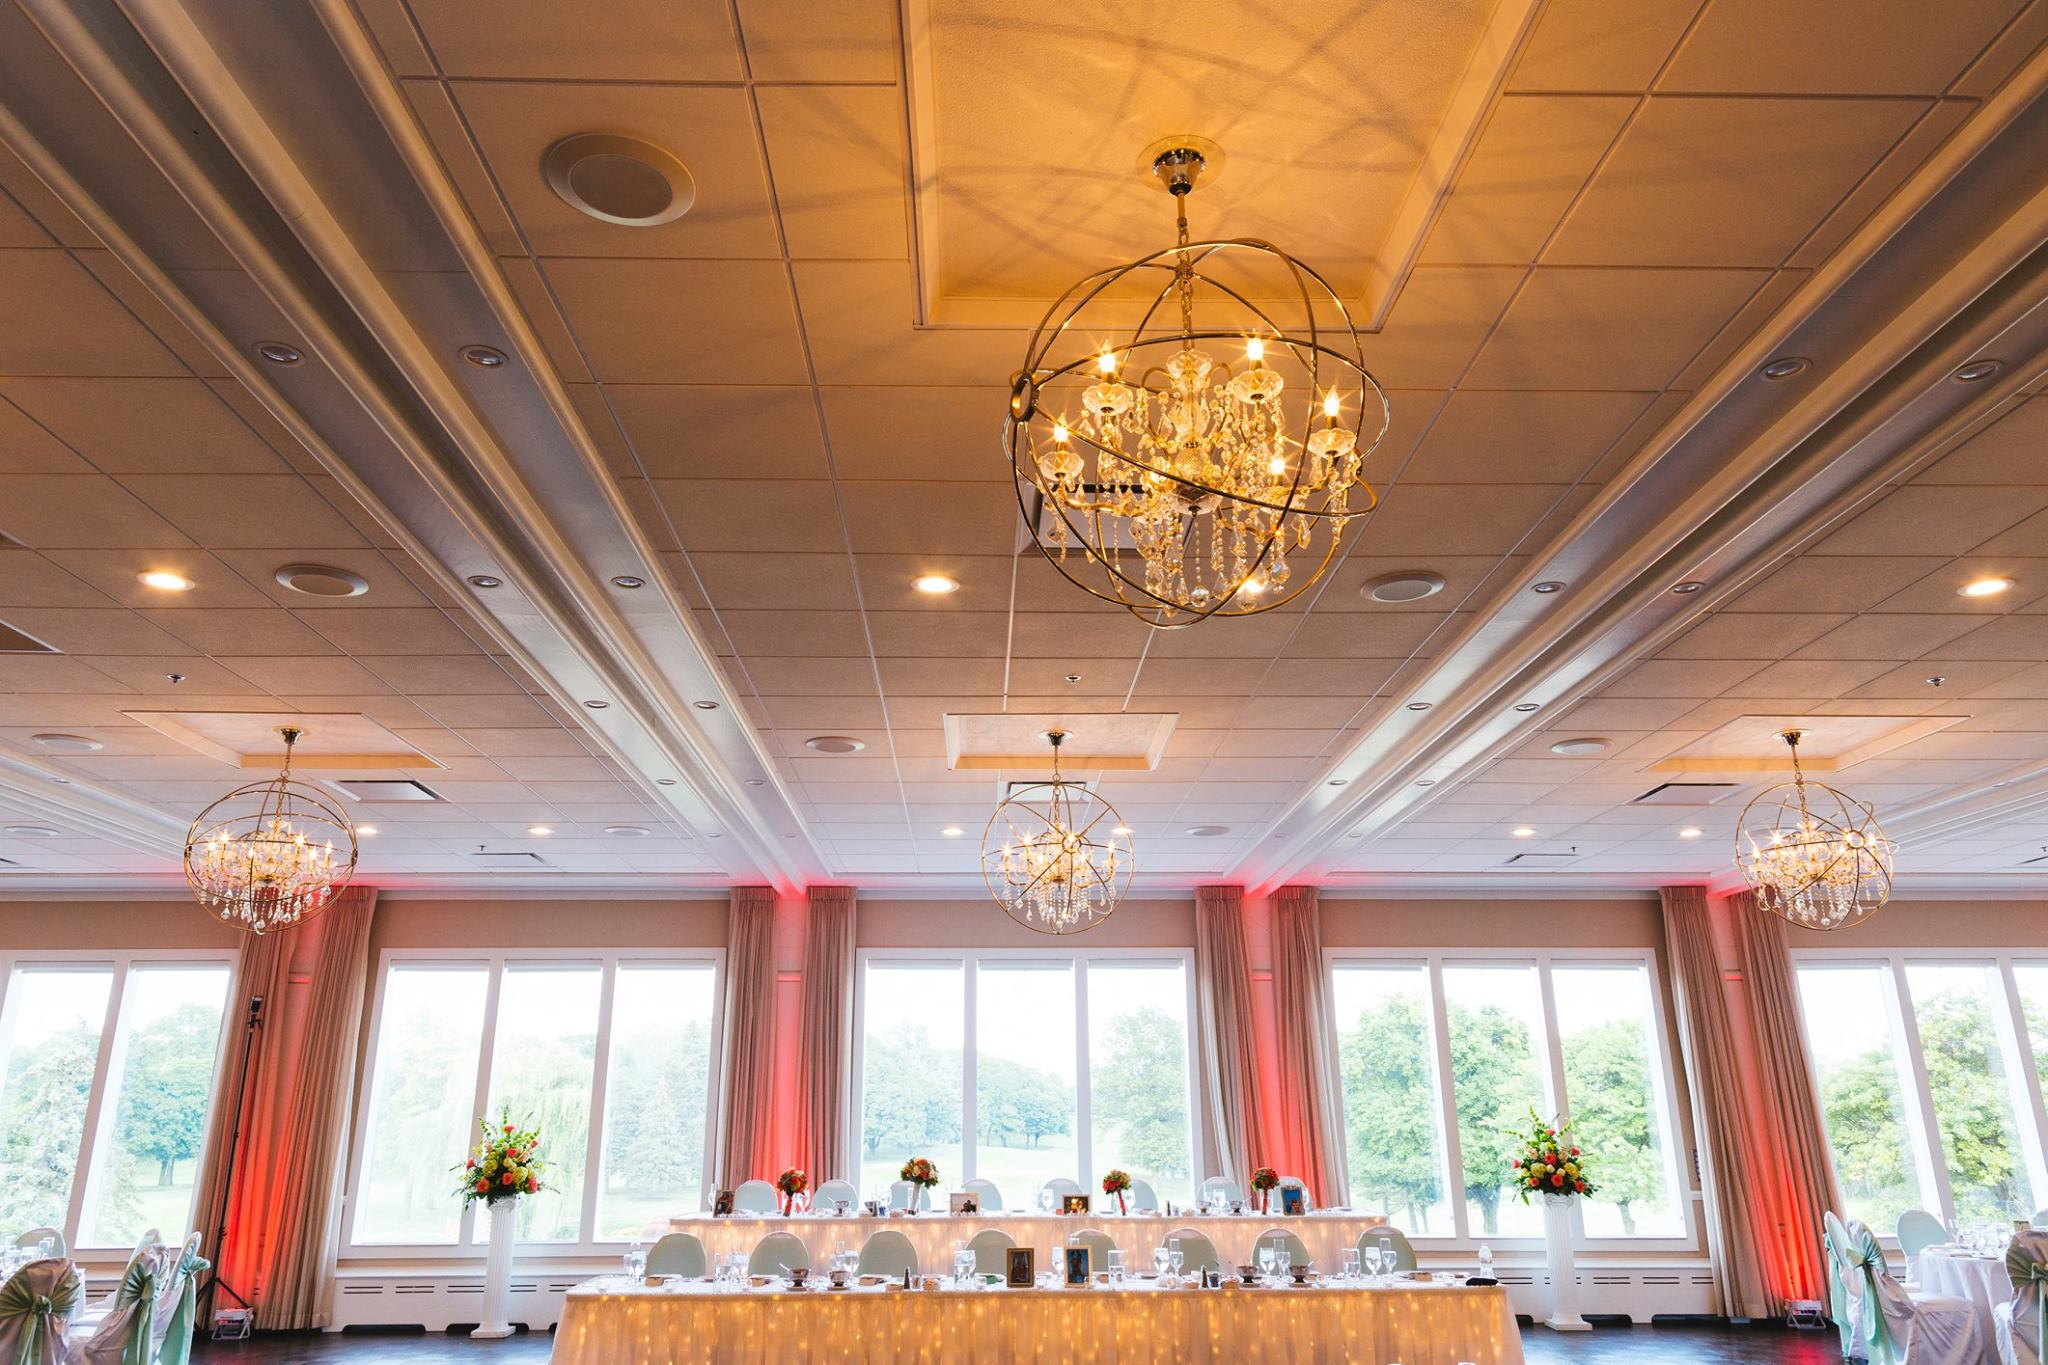 Every Wedding At Itasca Country Club Is Planned And Executed To Meet The Highest Of Standards So You Will Be Thrilled With A Memorable Experience